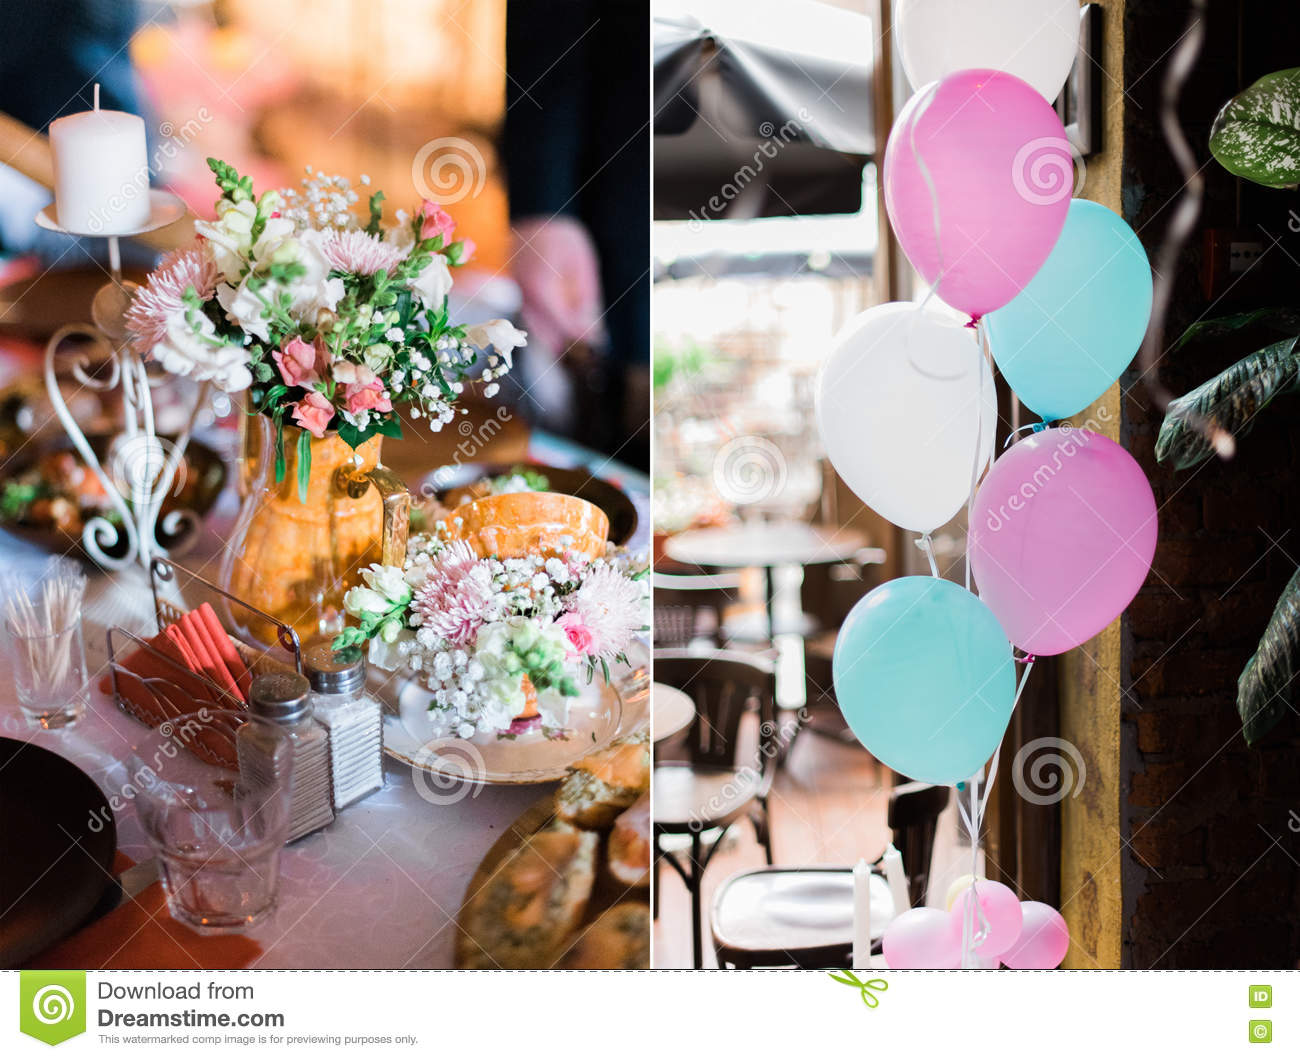 Wedding Decorations Collage With Balloons Sweets And Candles In